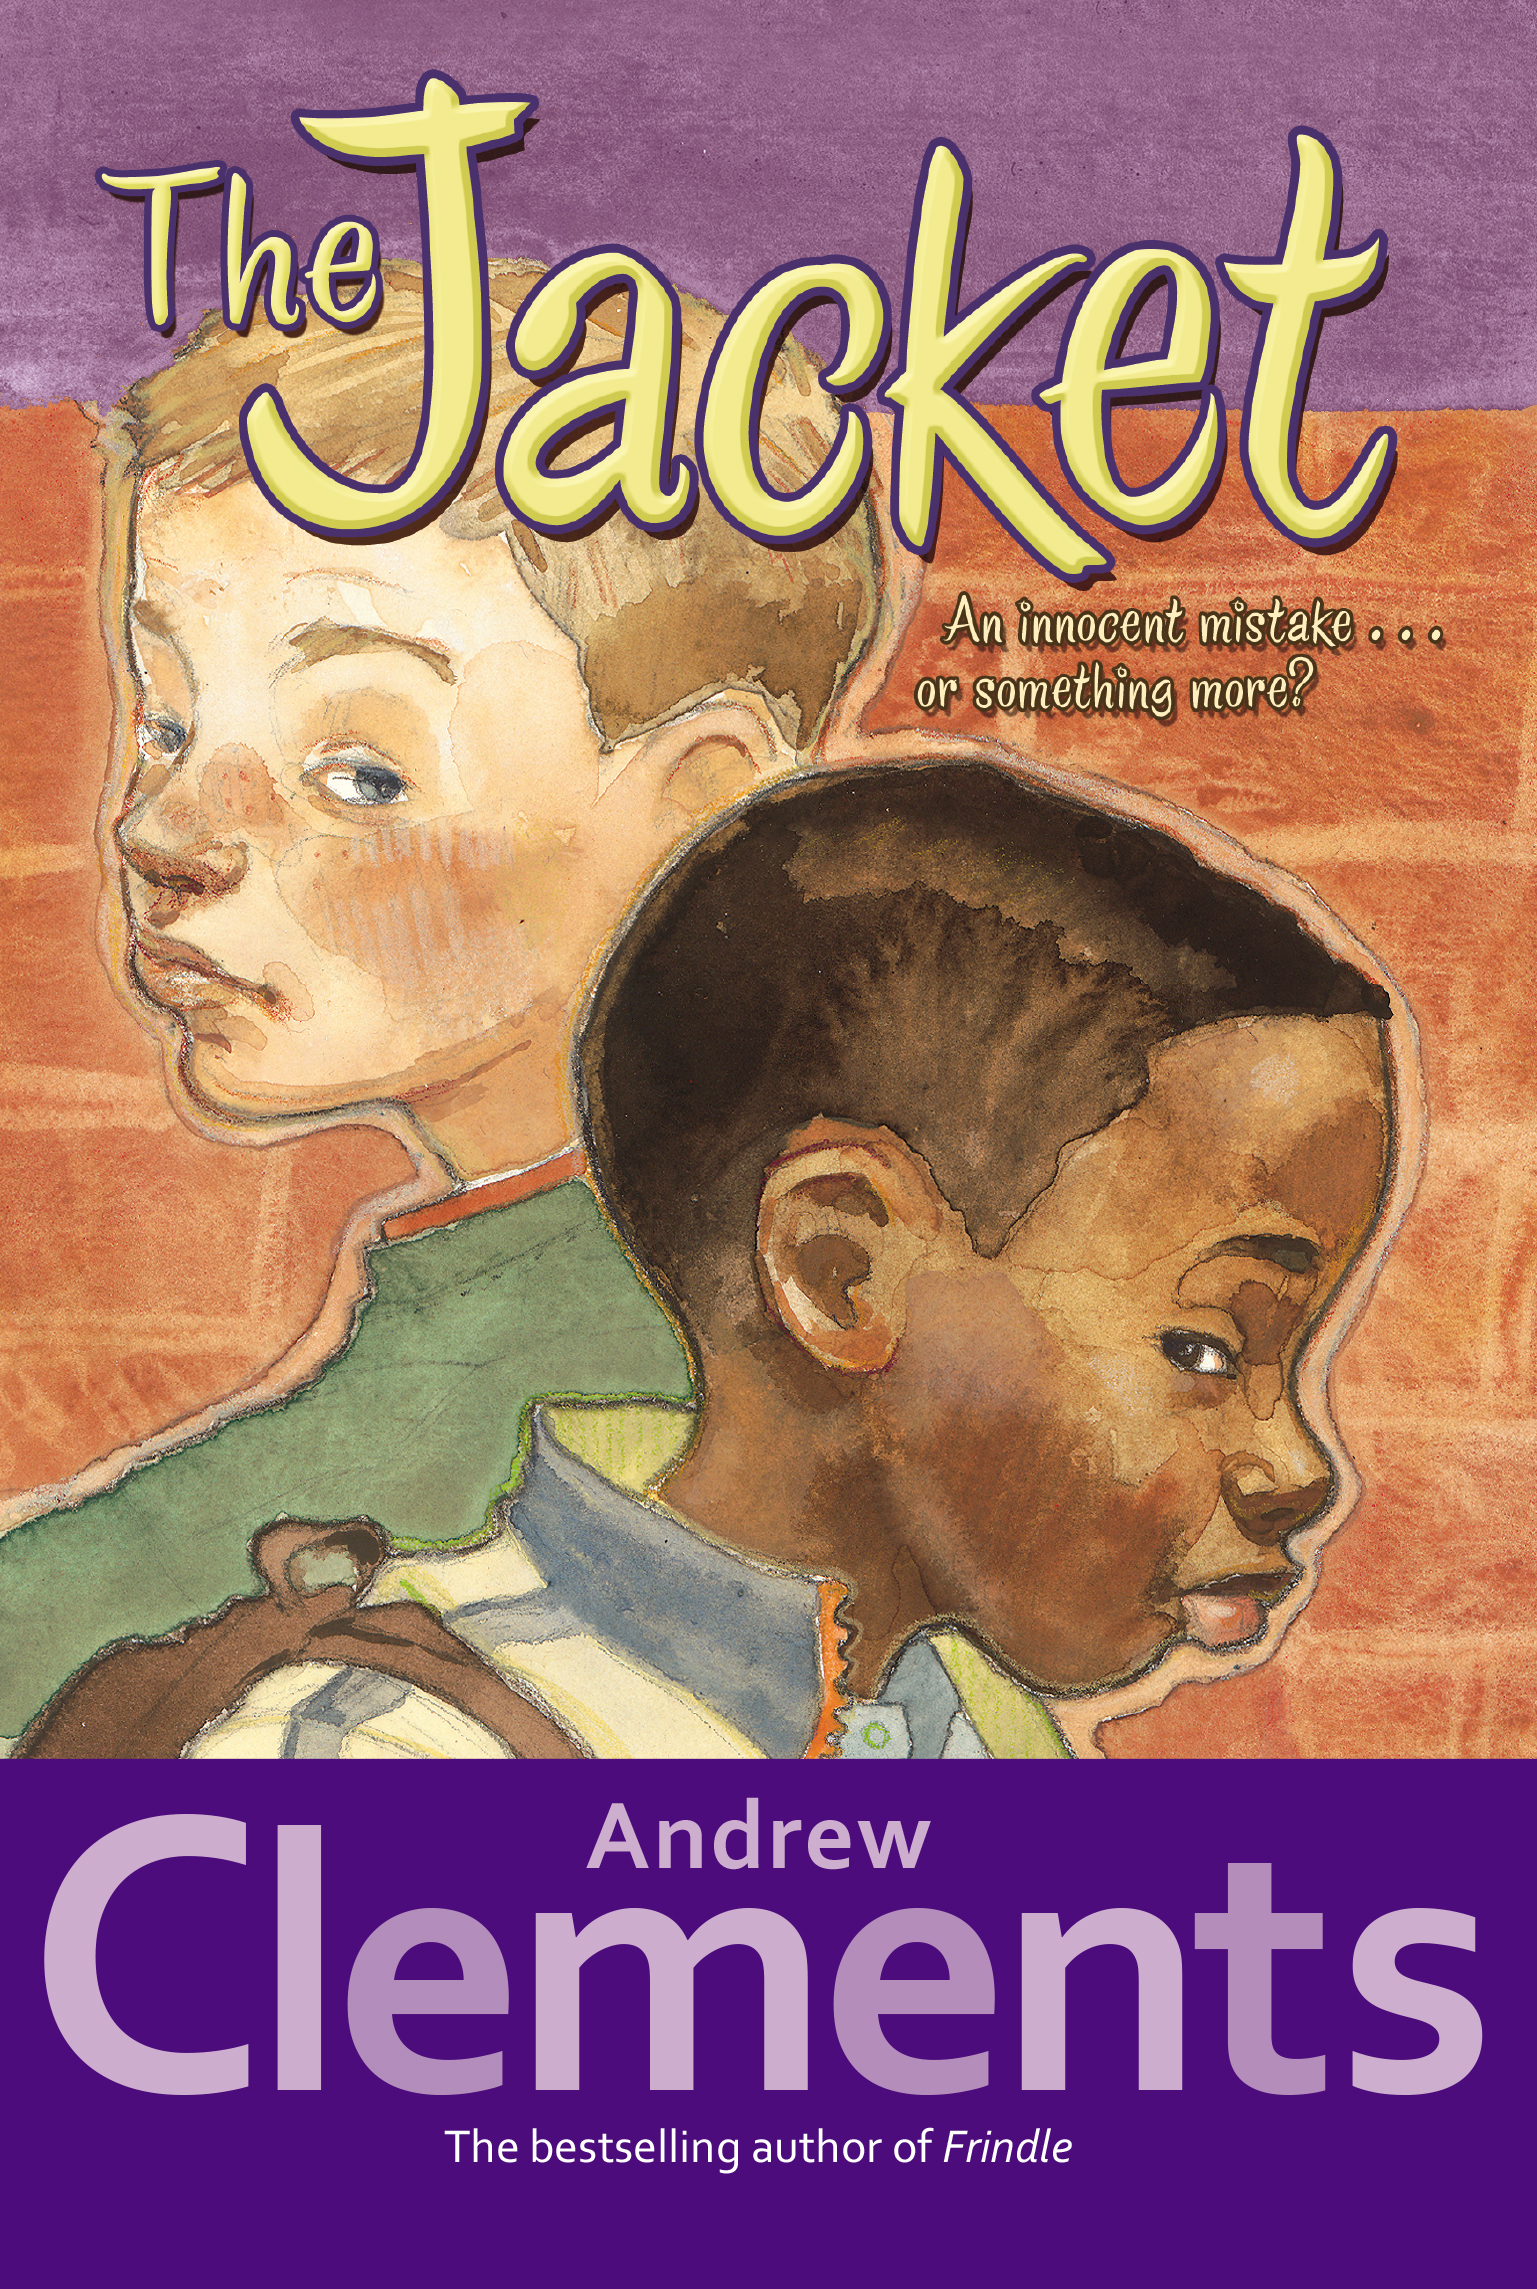 andrew-clements-jacket.jpg